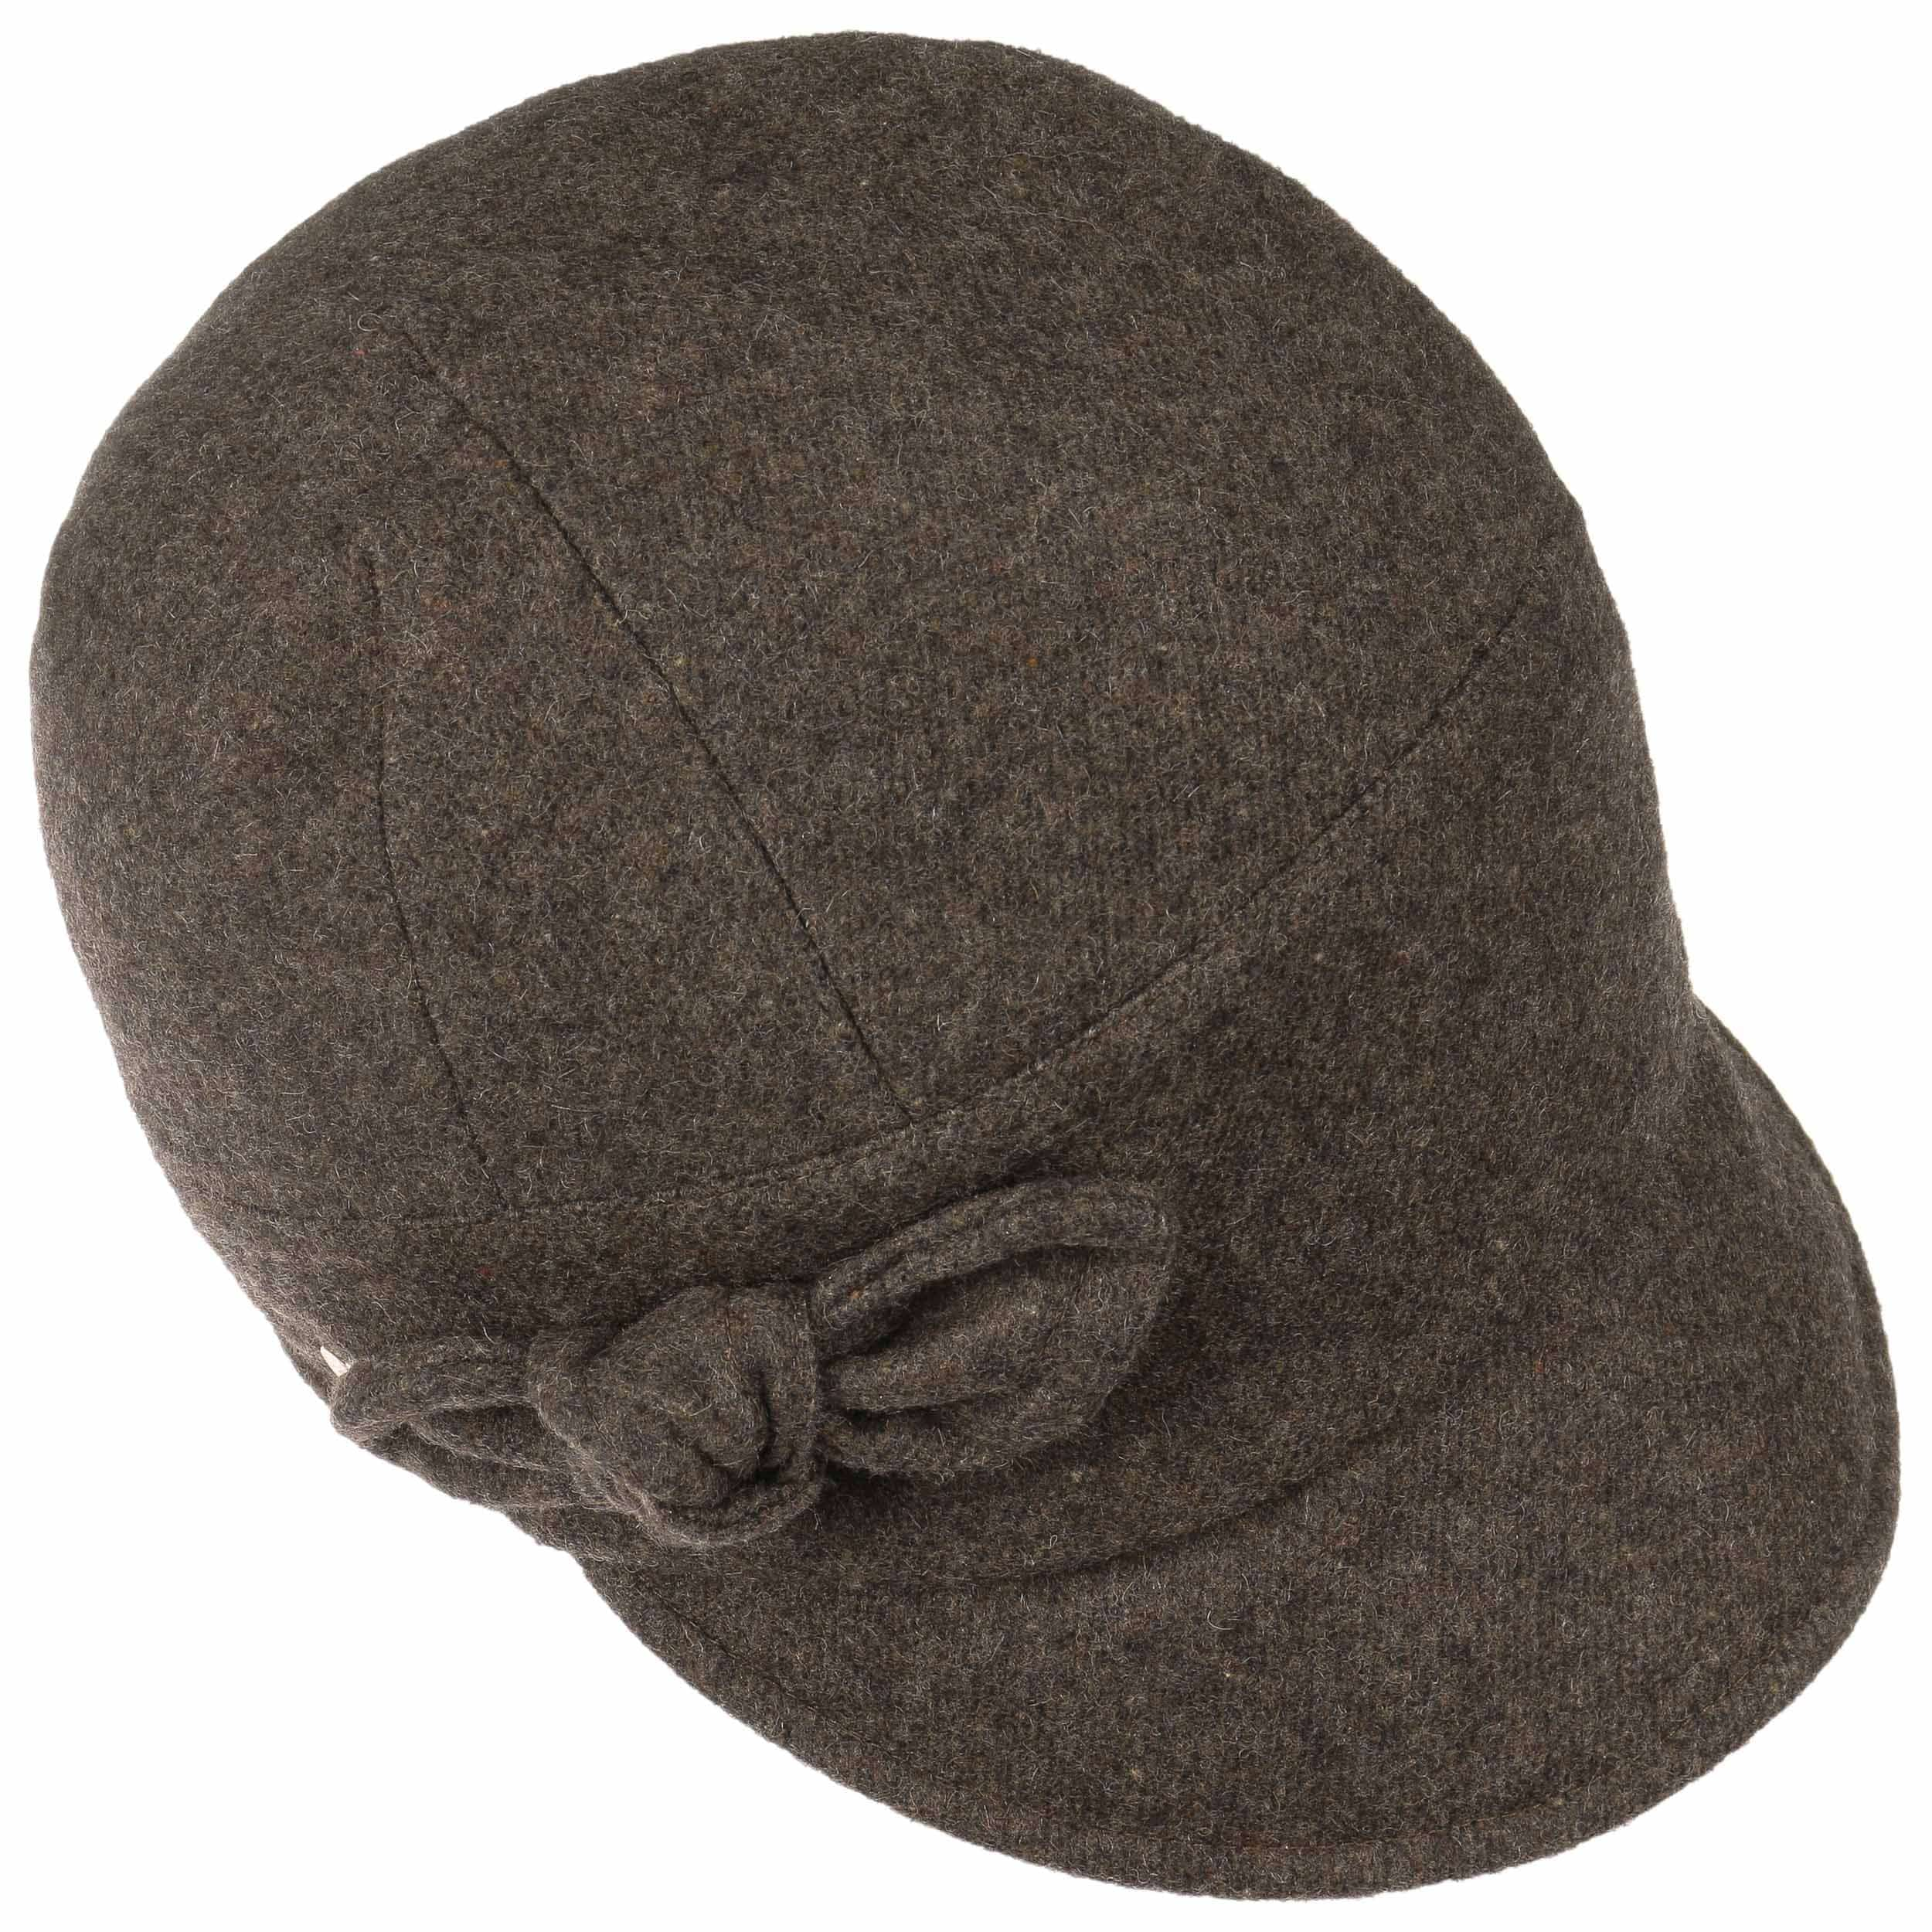 0285fb3162299 ... Casquette pour Femme Kalinka Sympatex by Mayser - anthracite 2 ...